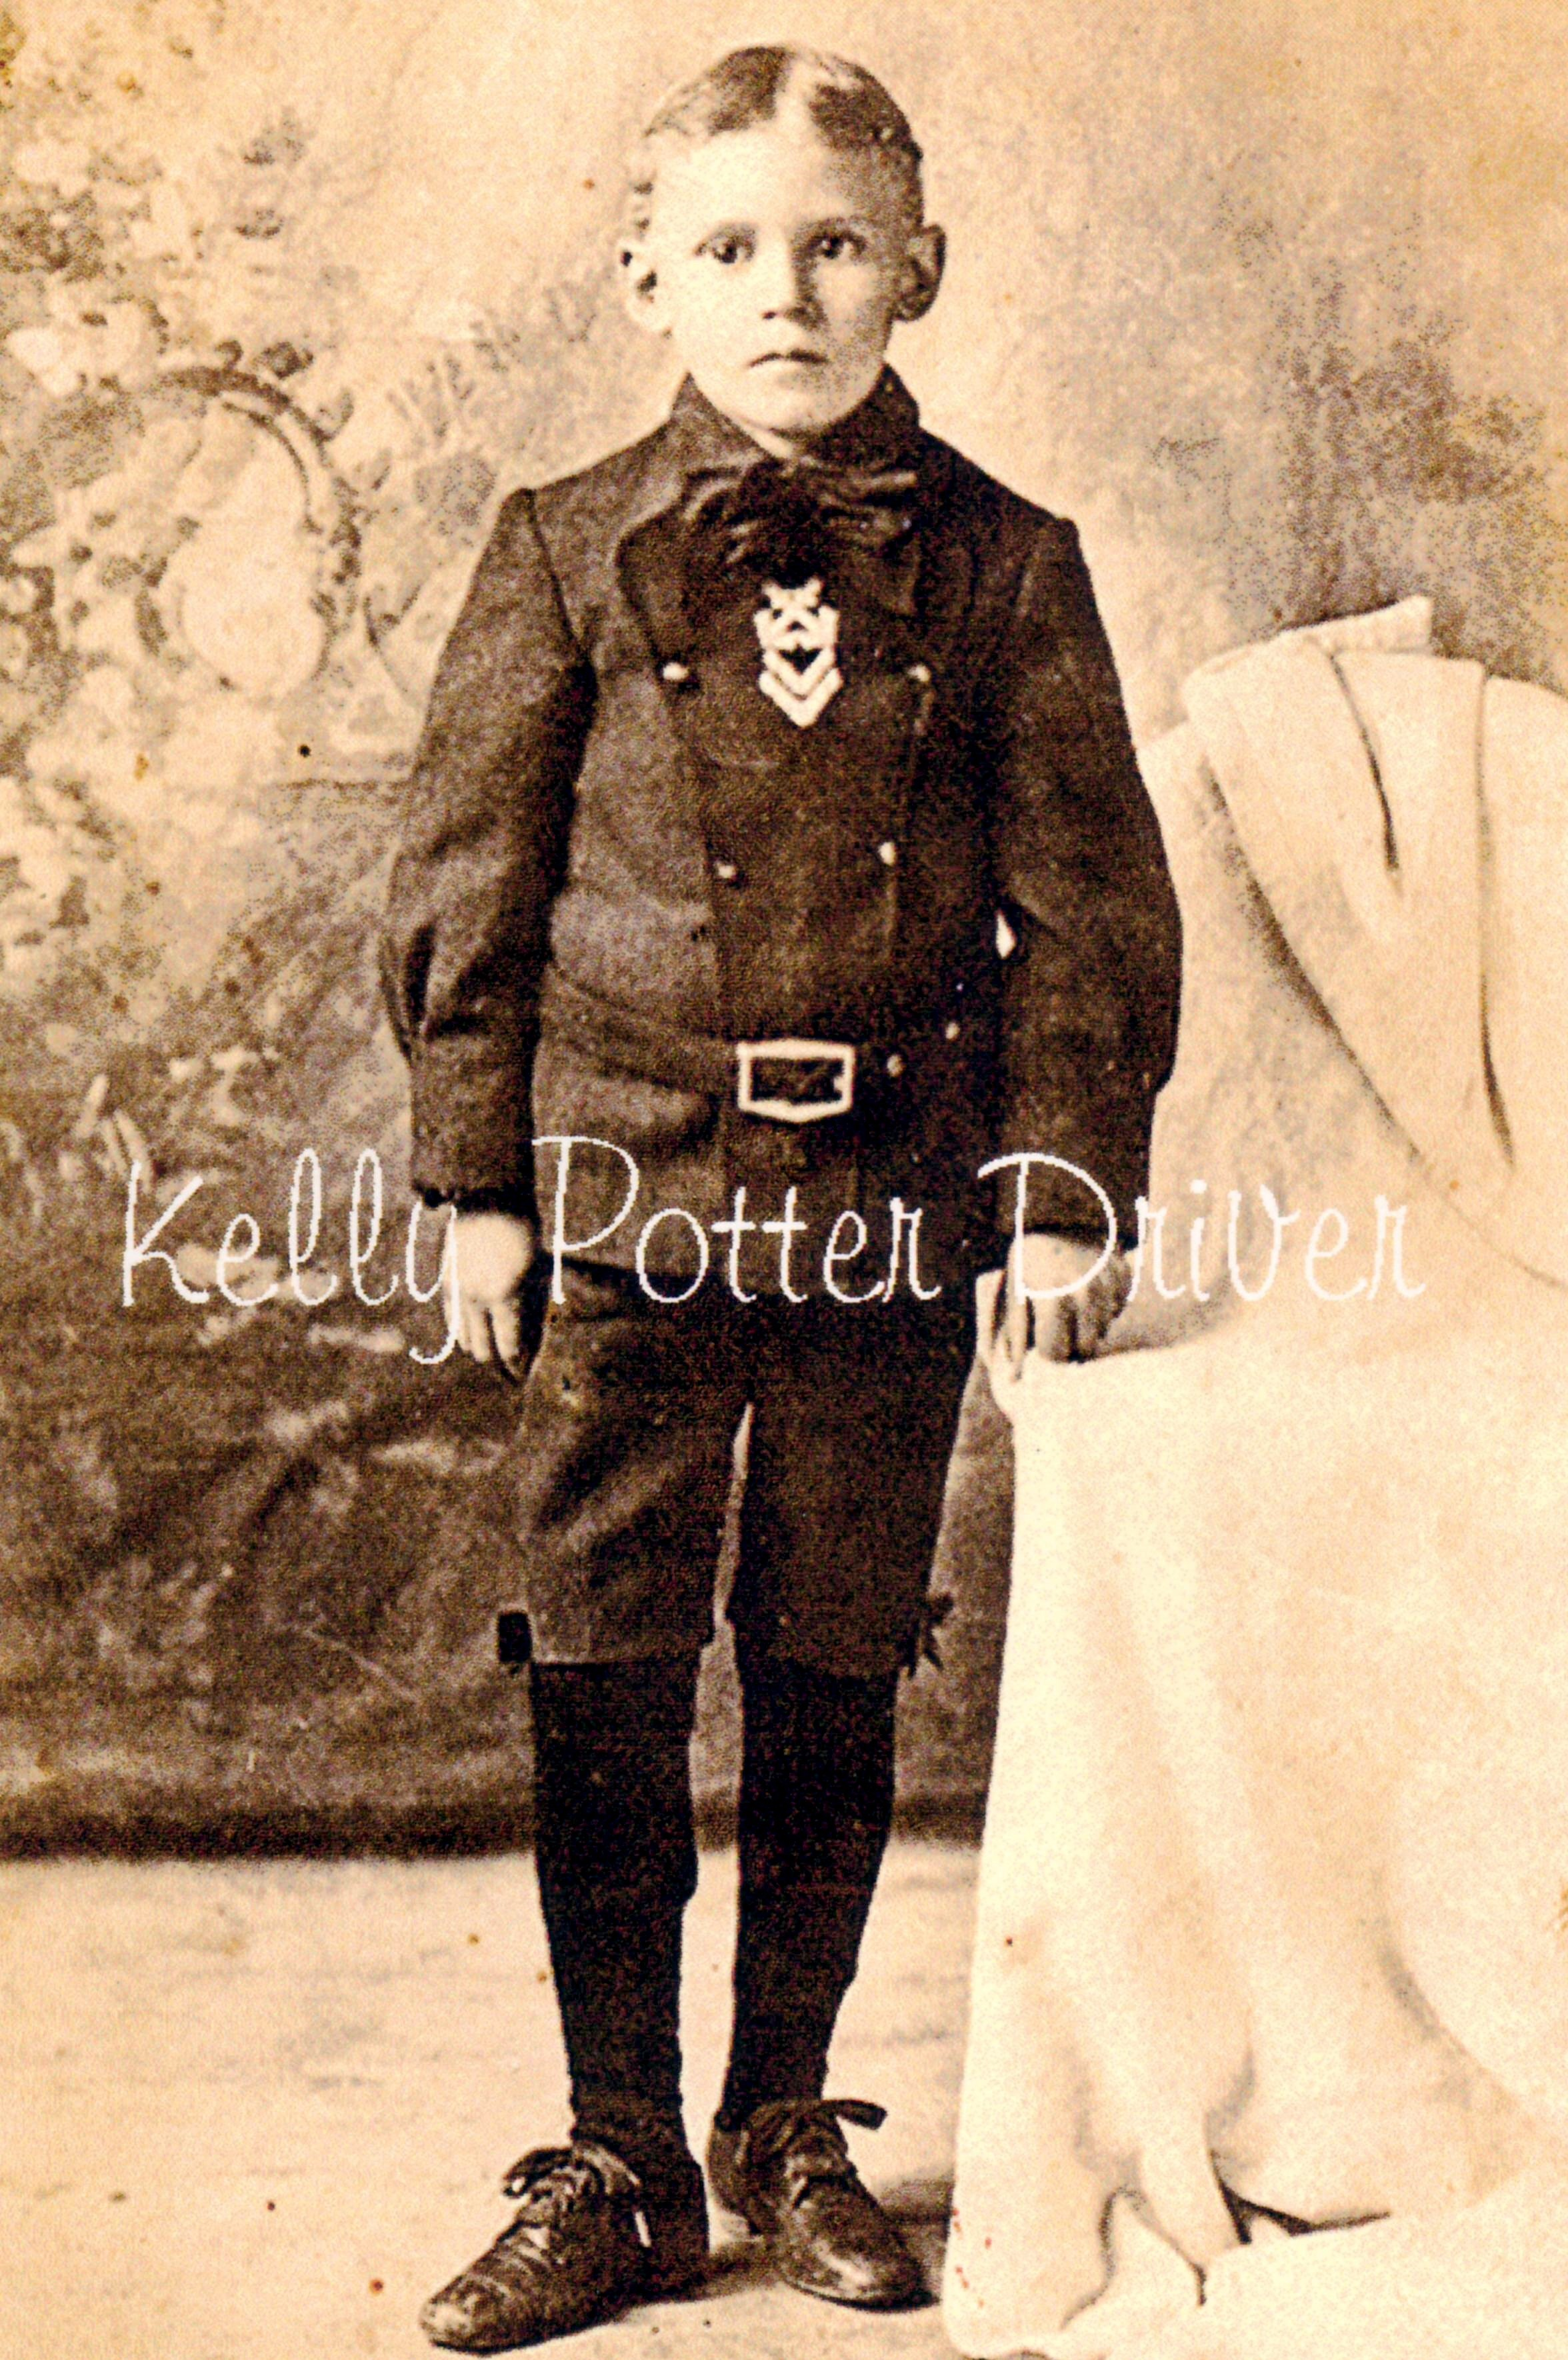 Kelly Potter Driver